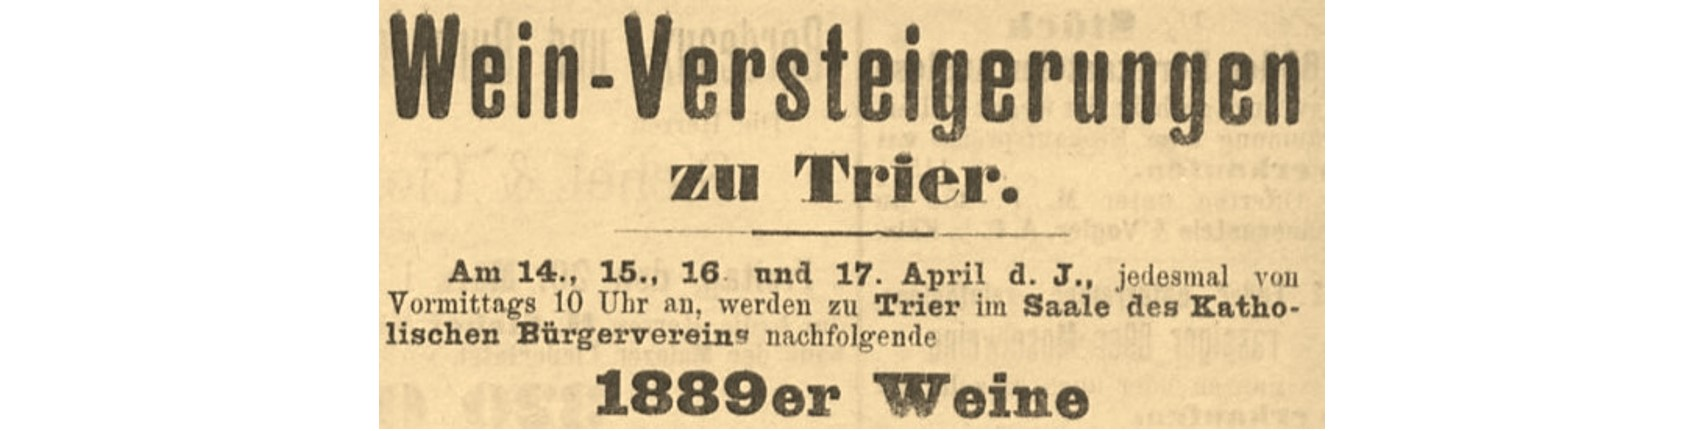 Trier Auctions | History | Announcement from 1889